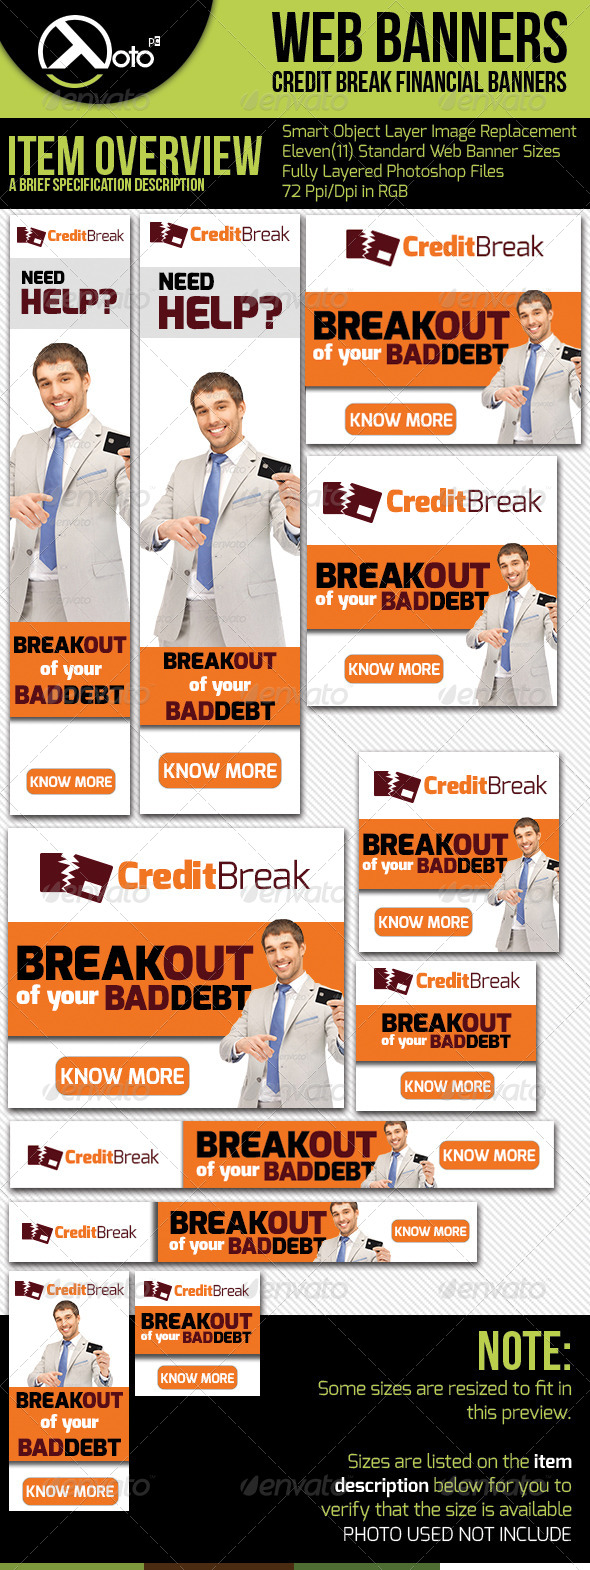 GraphicRiver Credit Break Financial Web Banners 6189668